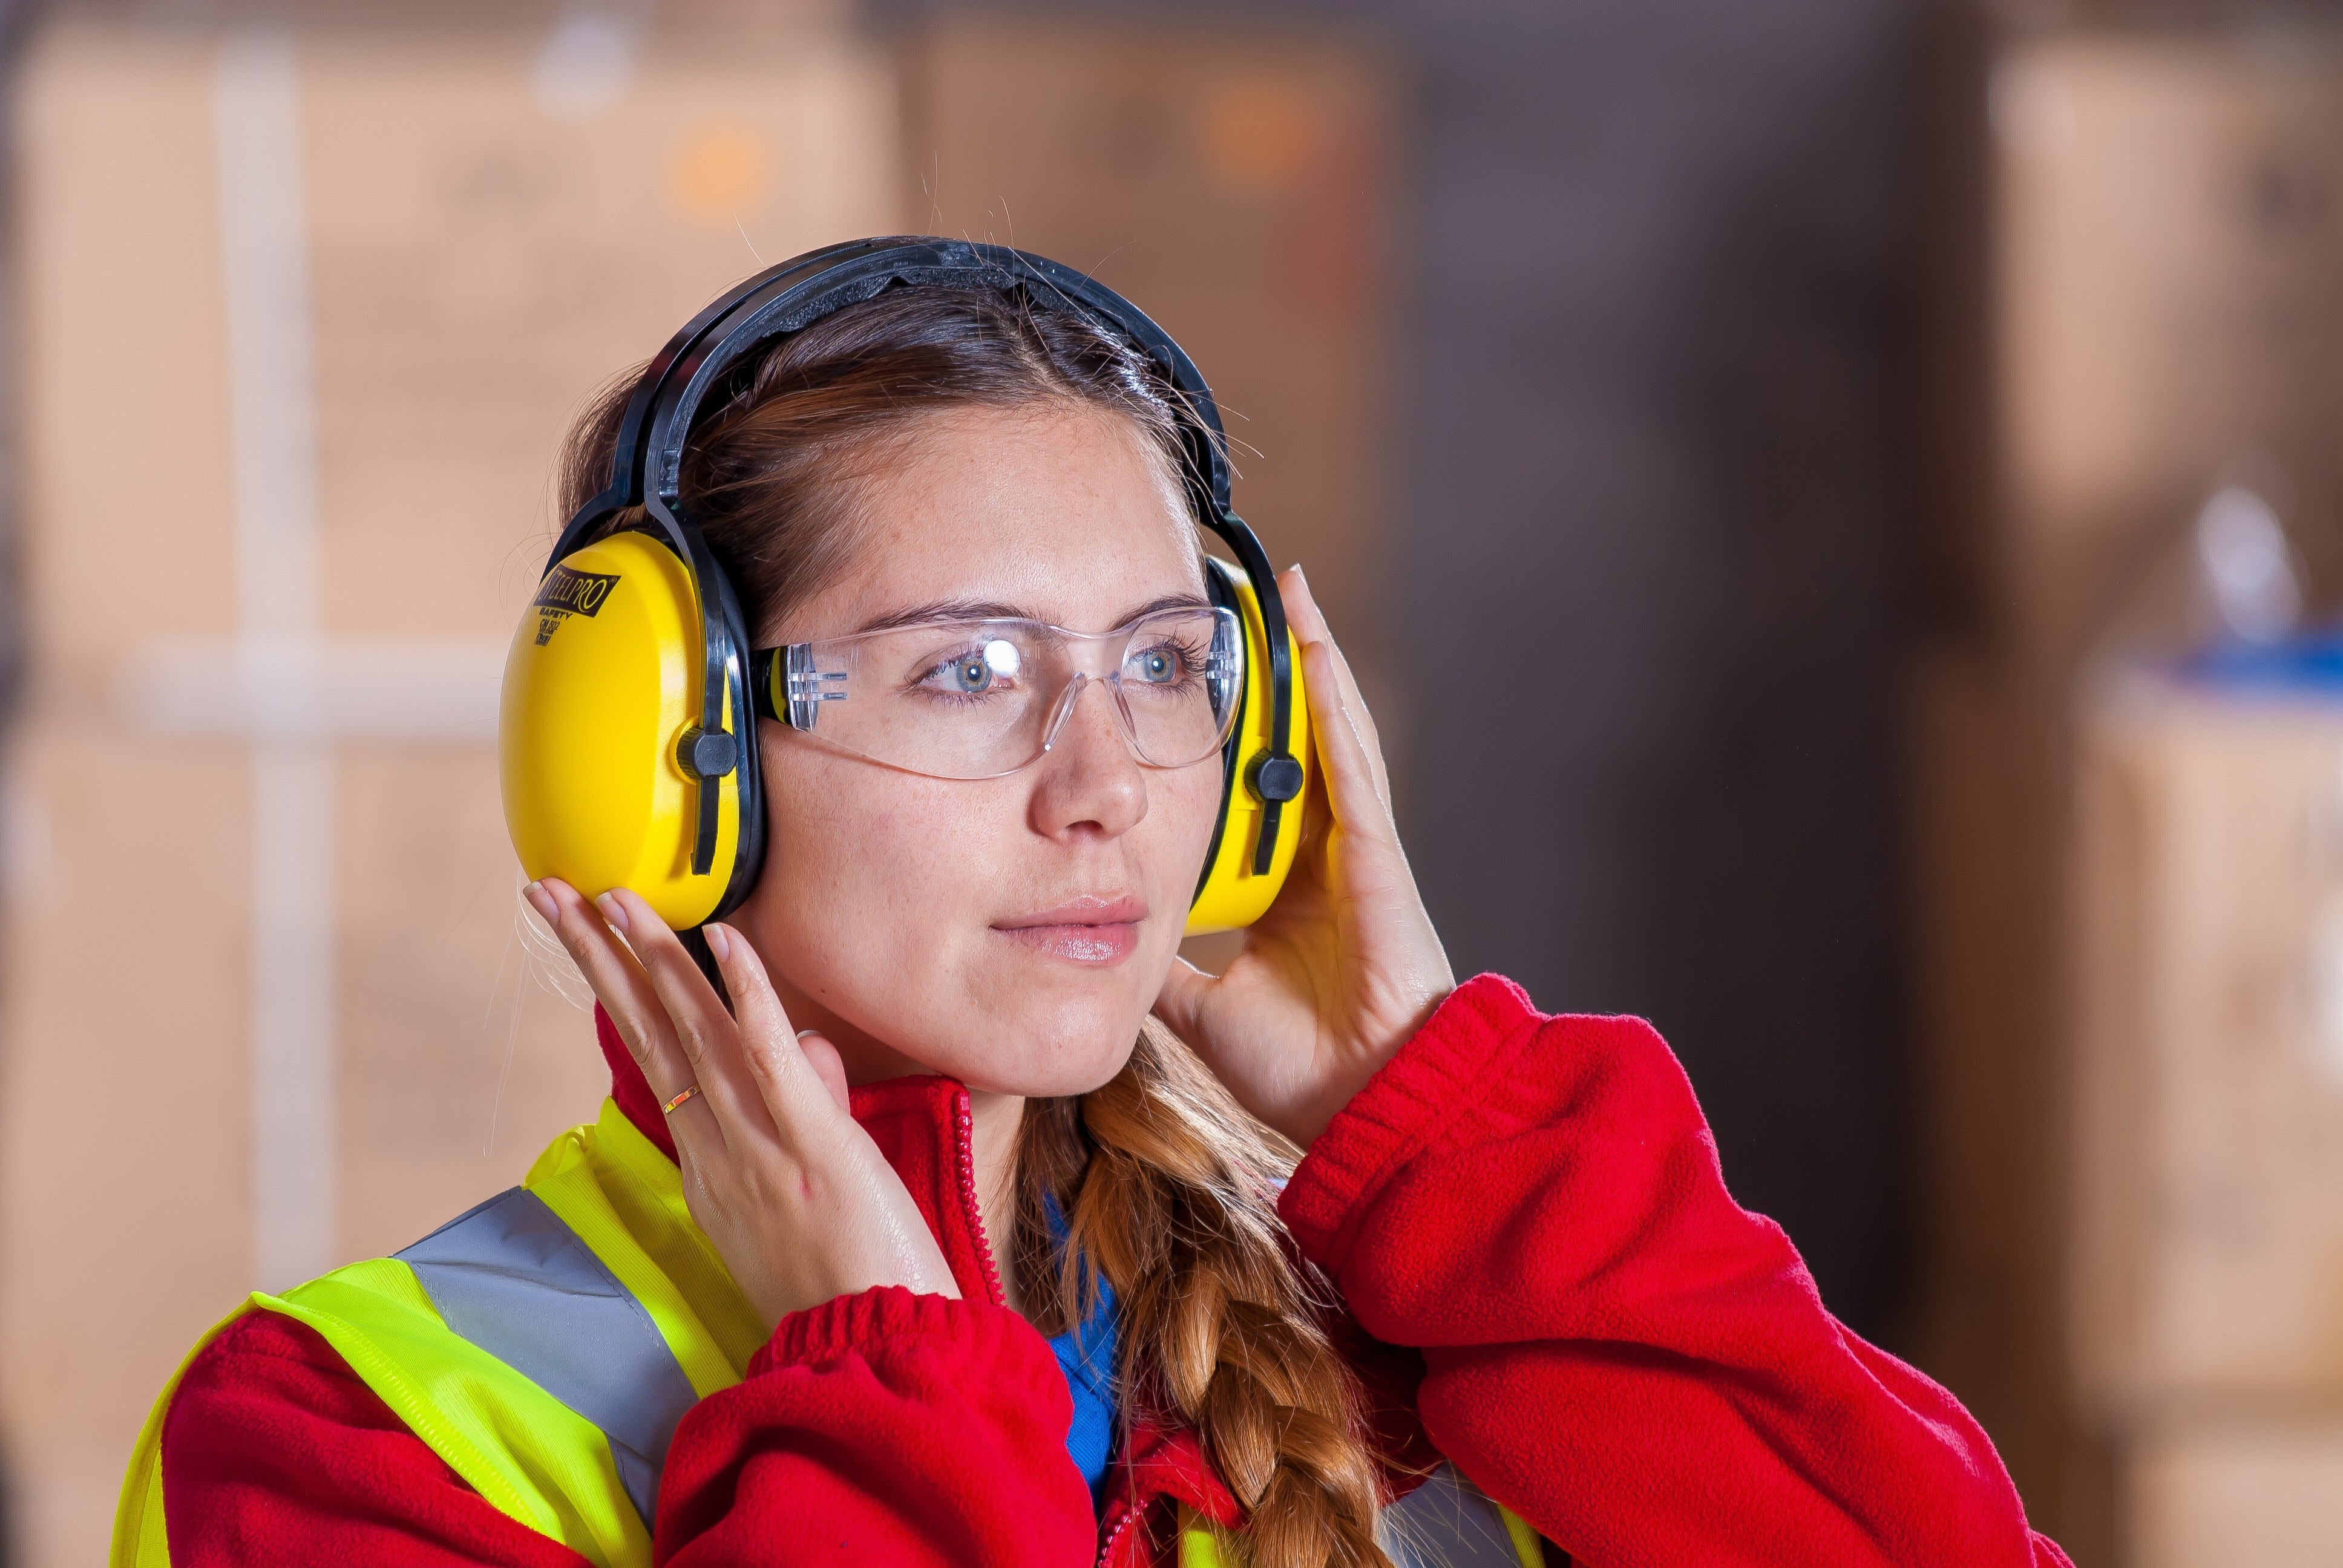 osha required annual refresher training occupational noise exposure pa pennsylvania philadelphia delaware county new jersey